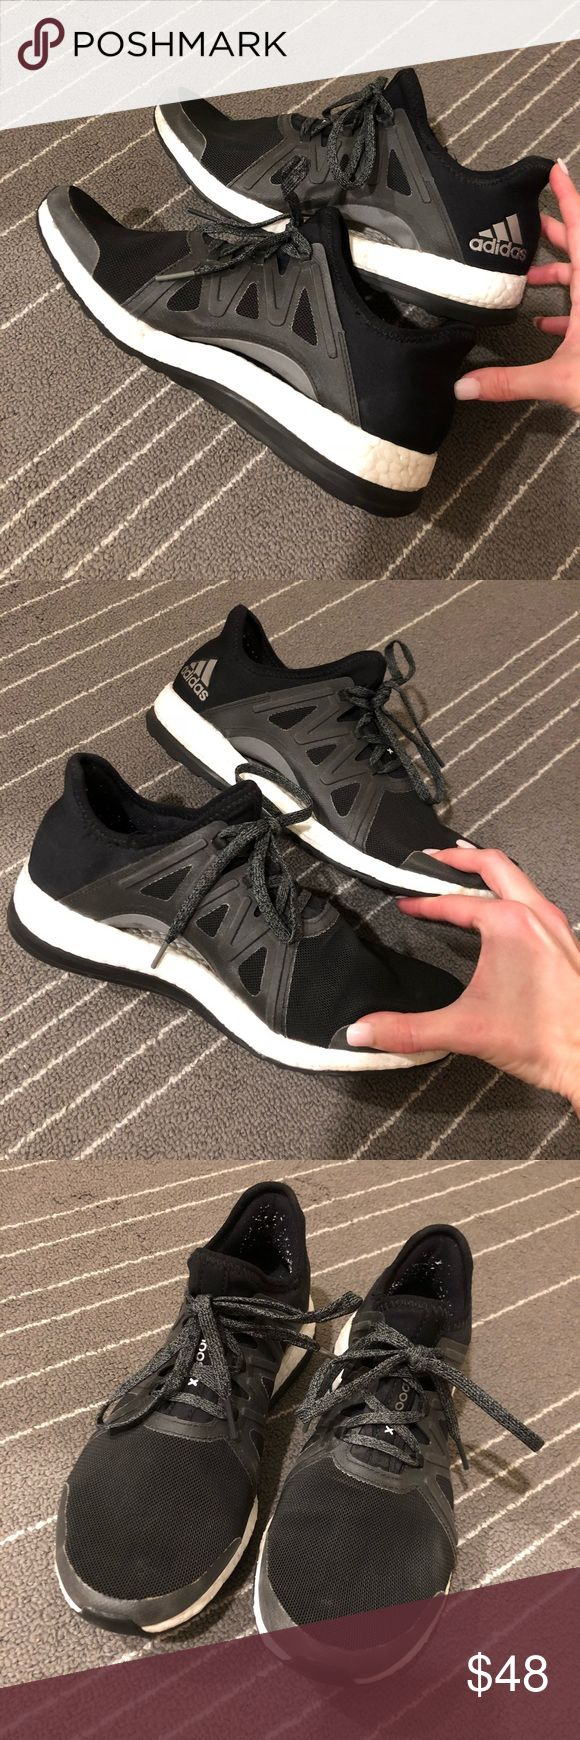 👟Adidas Pure Boost Black Sneakers 8👟 Adidas Pure Boost Endless Energy Sneakers. Color is black. Worn a few times. Size 8. adidas Shoes